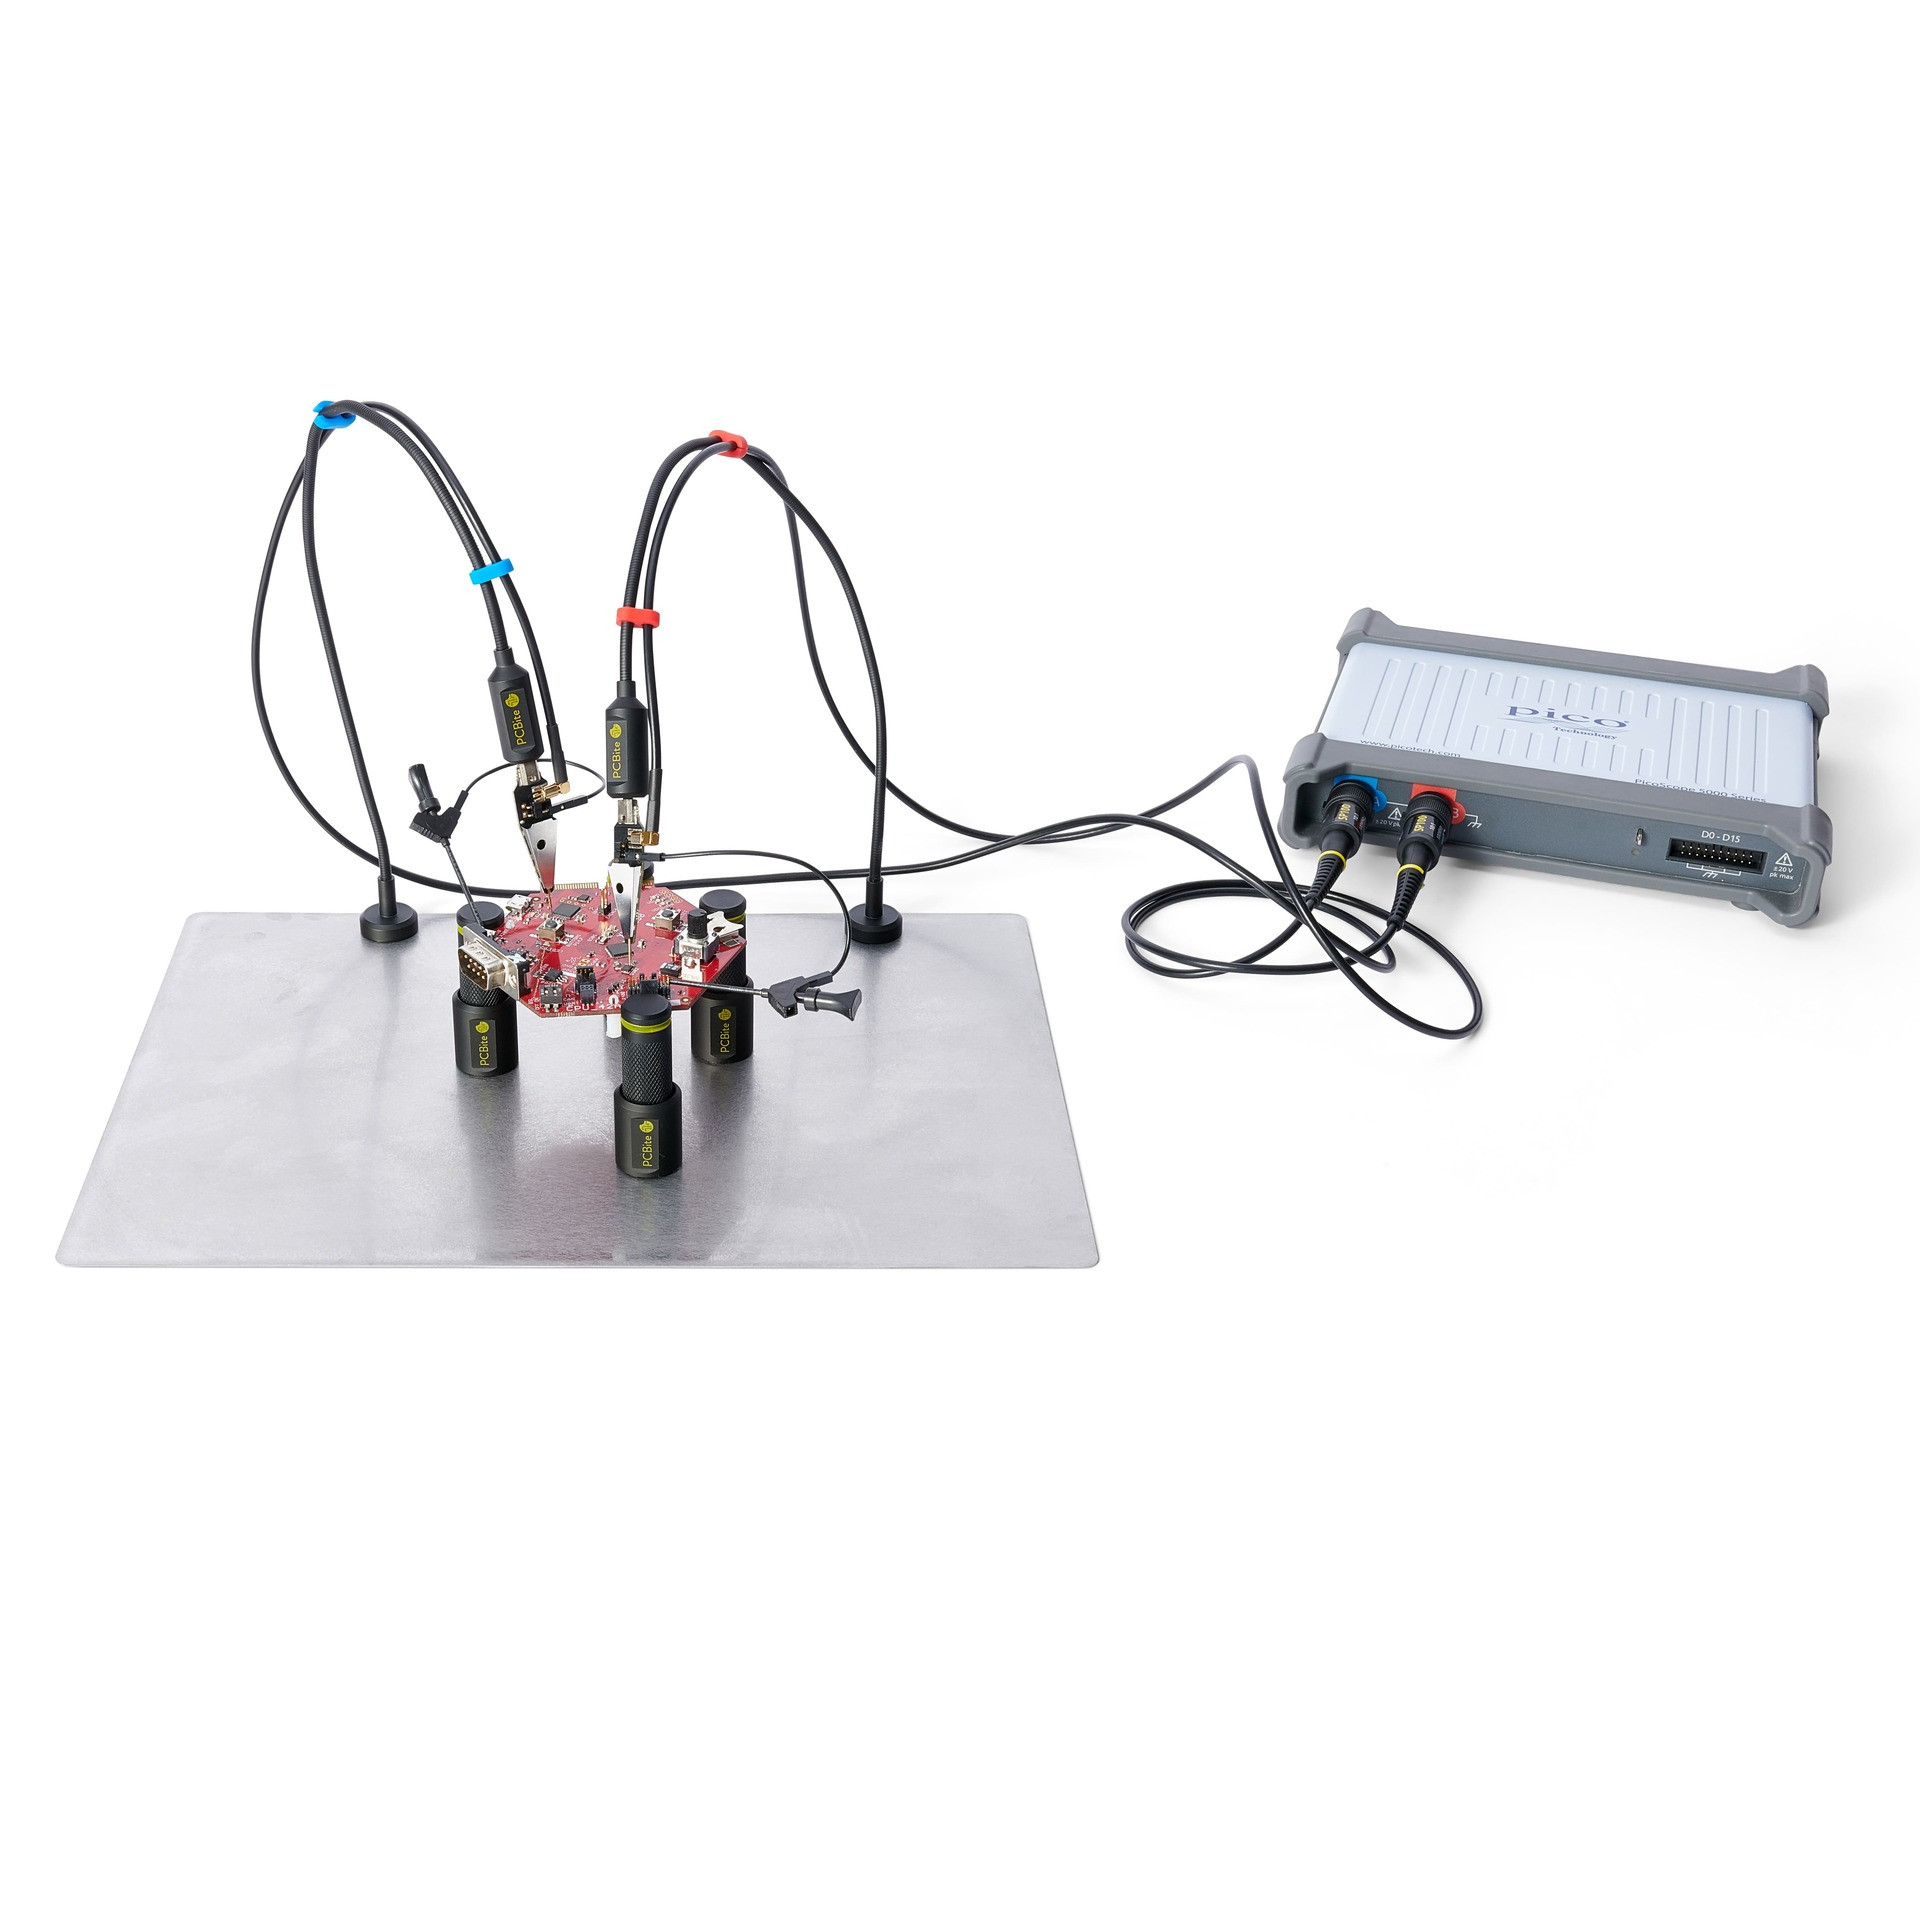 PCBite kit with 2x SP200 200 Mhz handsfree oscilloscope probes details